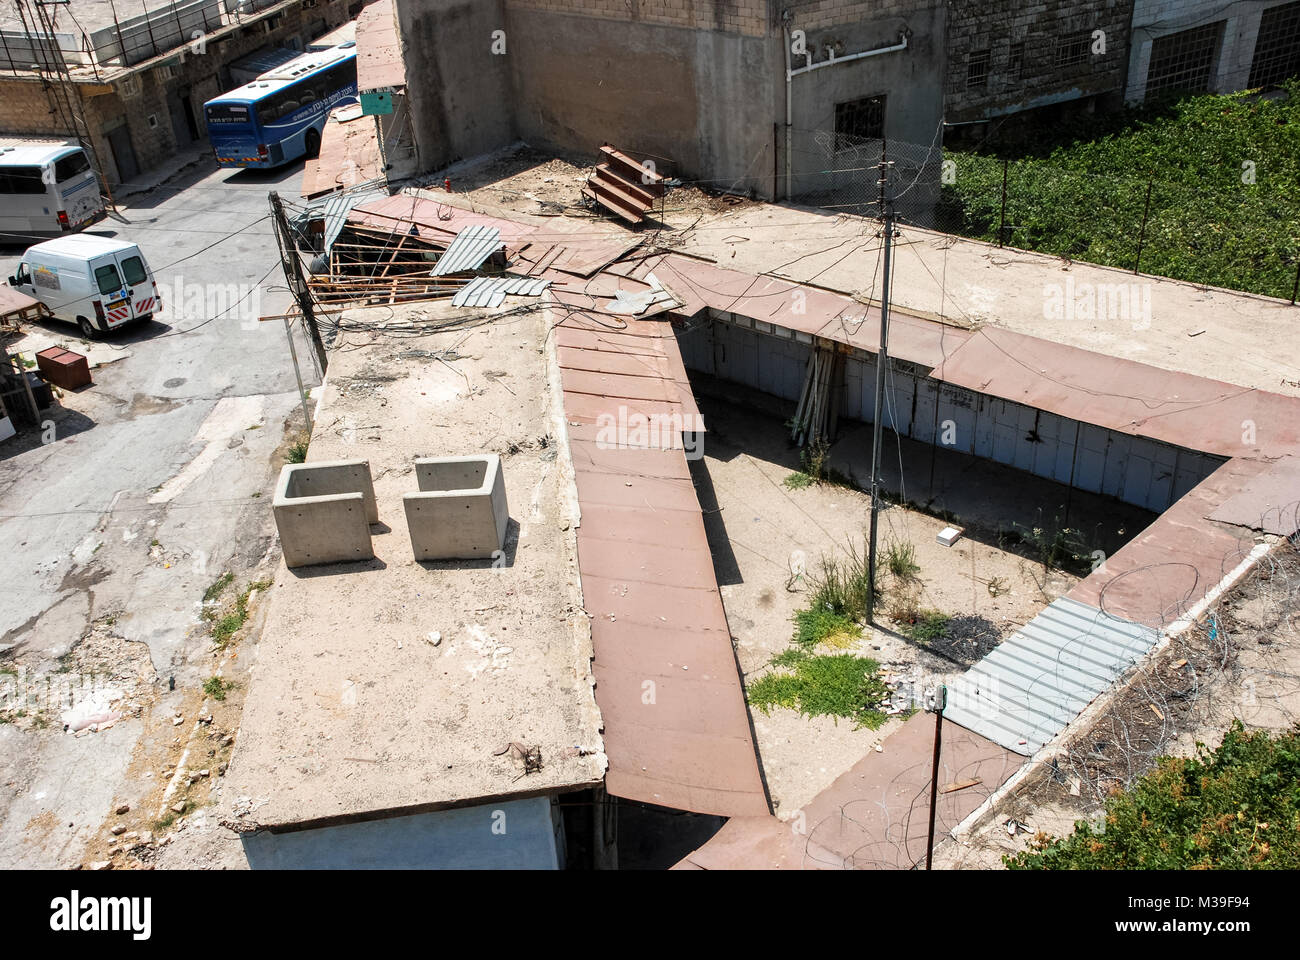 HEBRON, ISRAEL - AUGUST 04, 2010: Wide angle picture  from the topo of closed doors at the old market at Hebron, - Stock Image